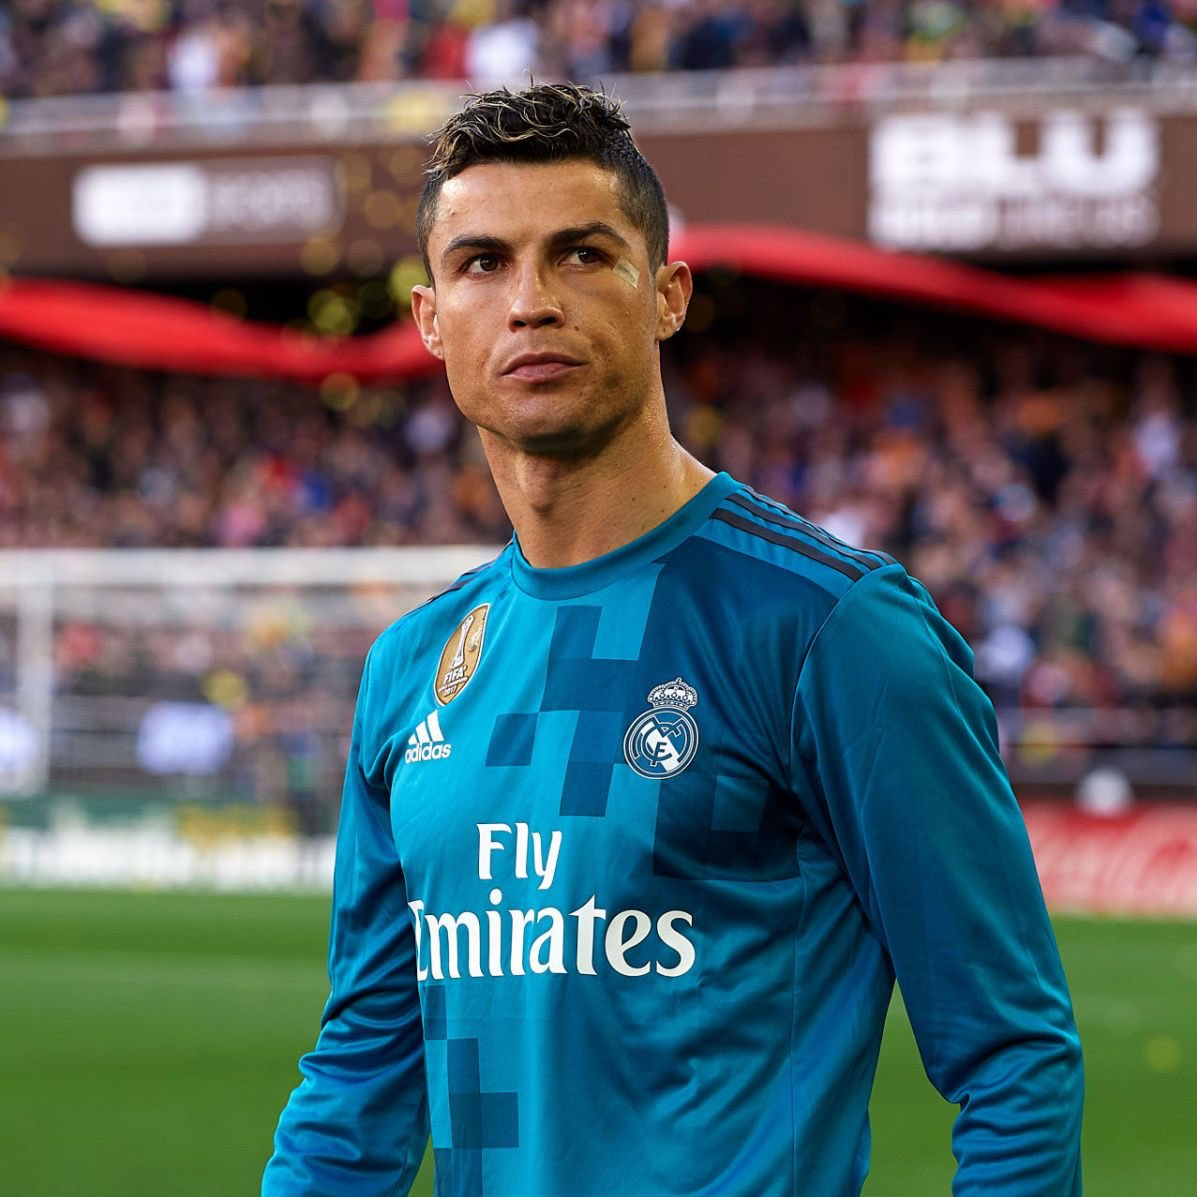 Messi: If a team loses a player who scores 50 goals per season, it is noted. Real Madrid has great players, but Cristiano scores 50 goals per season.